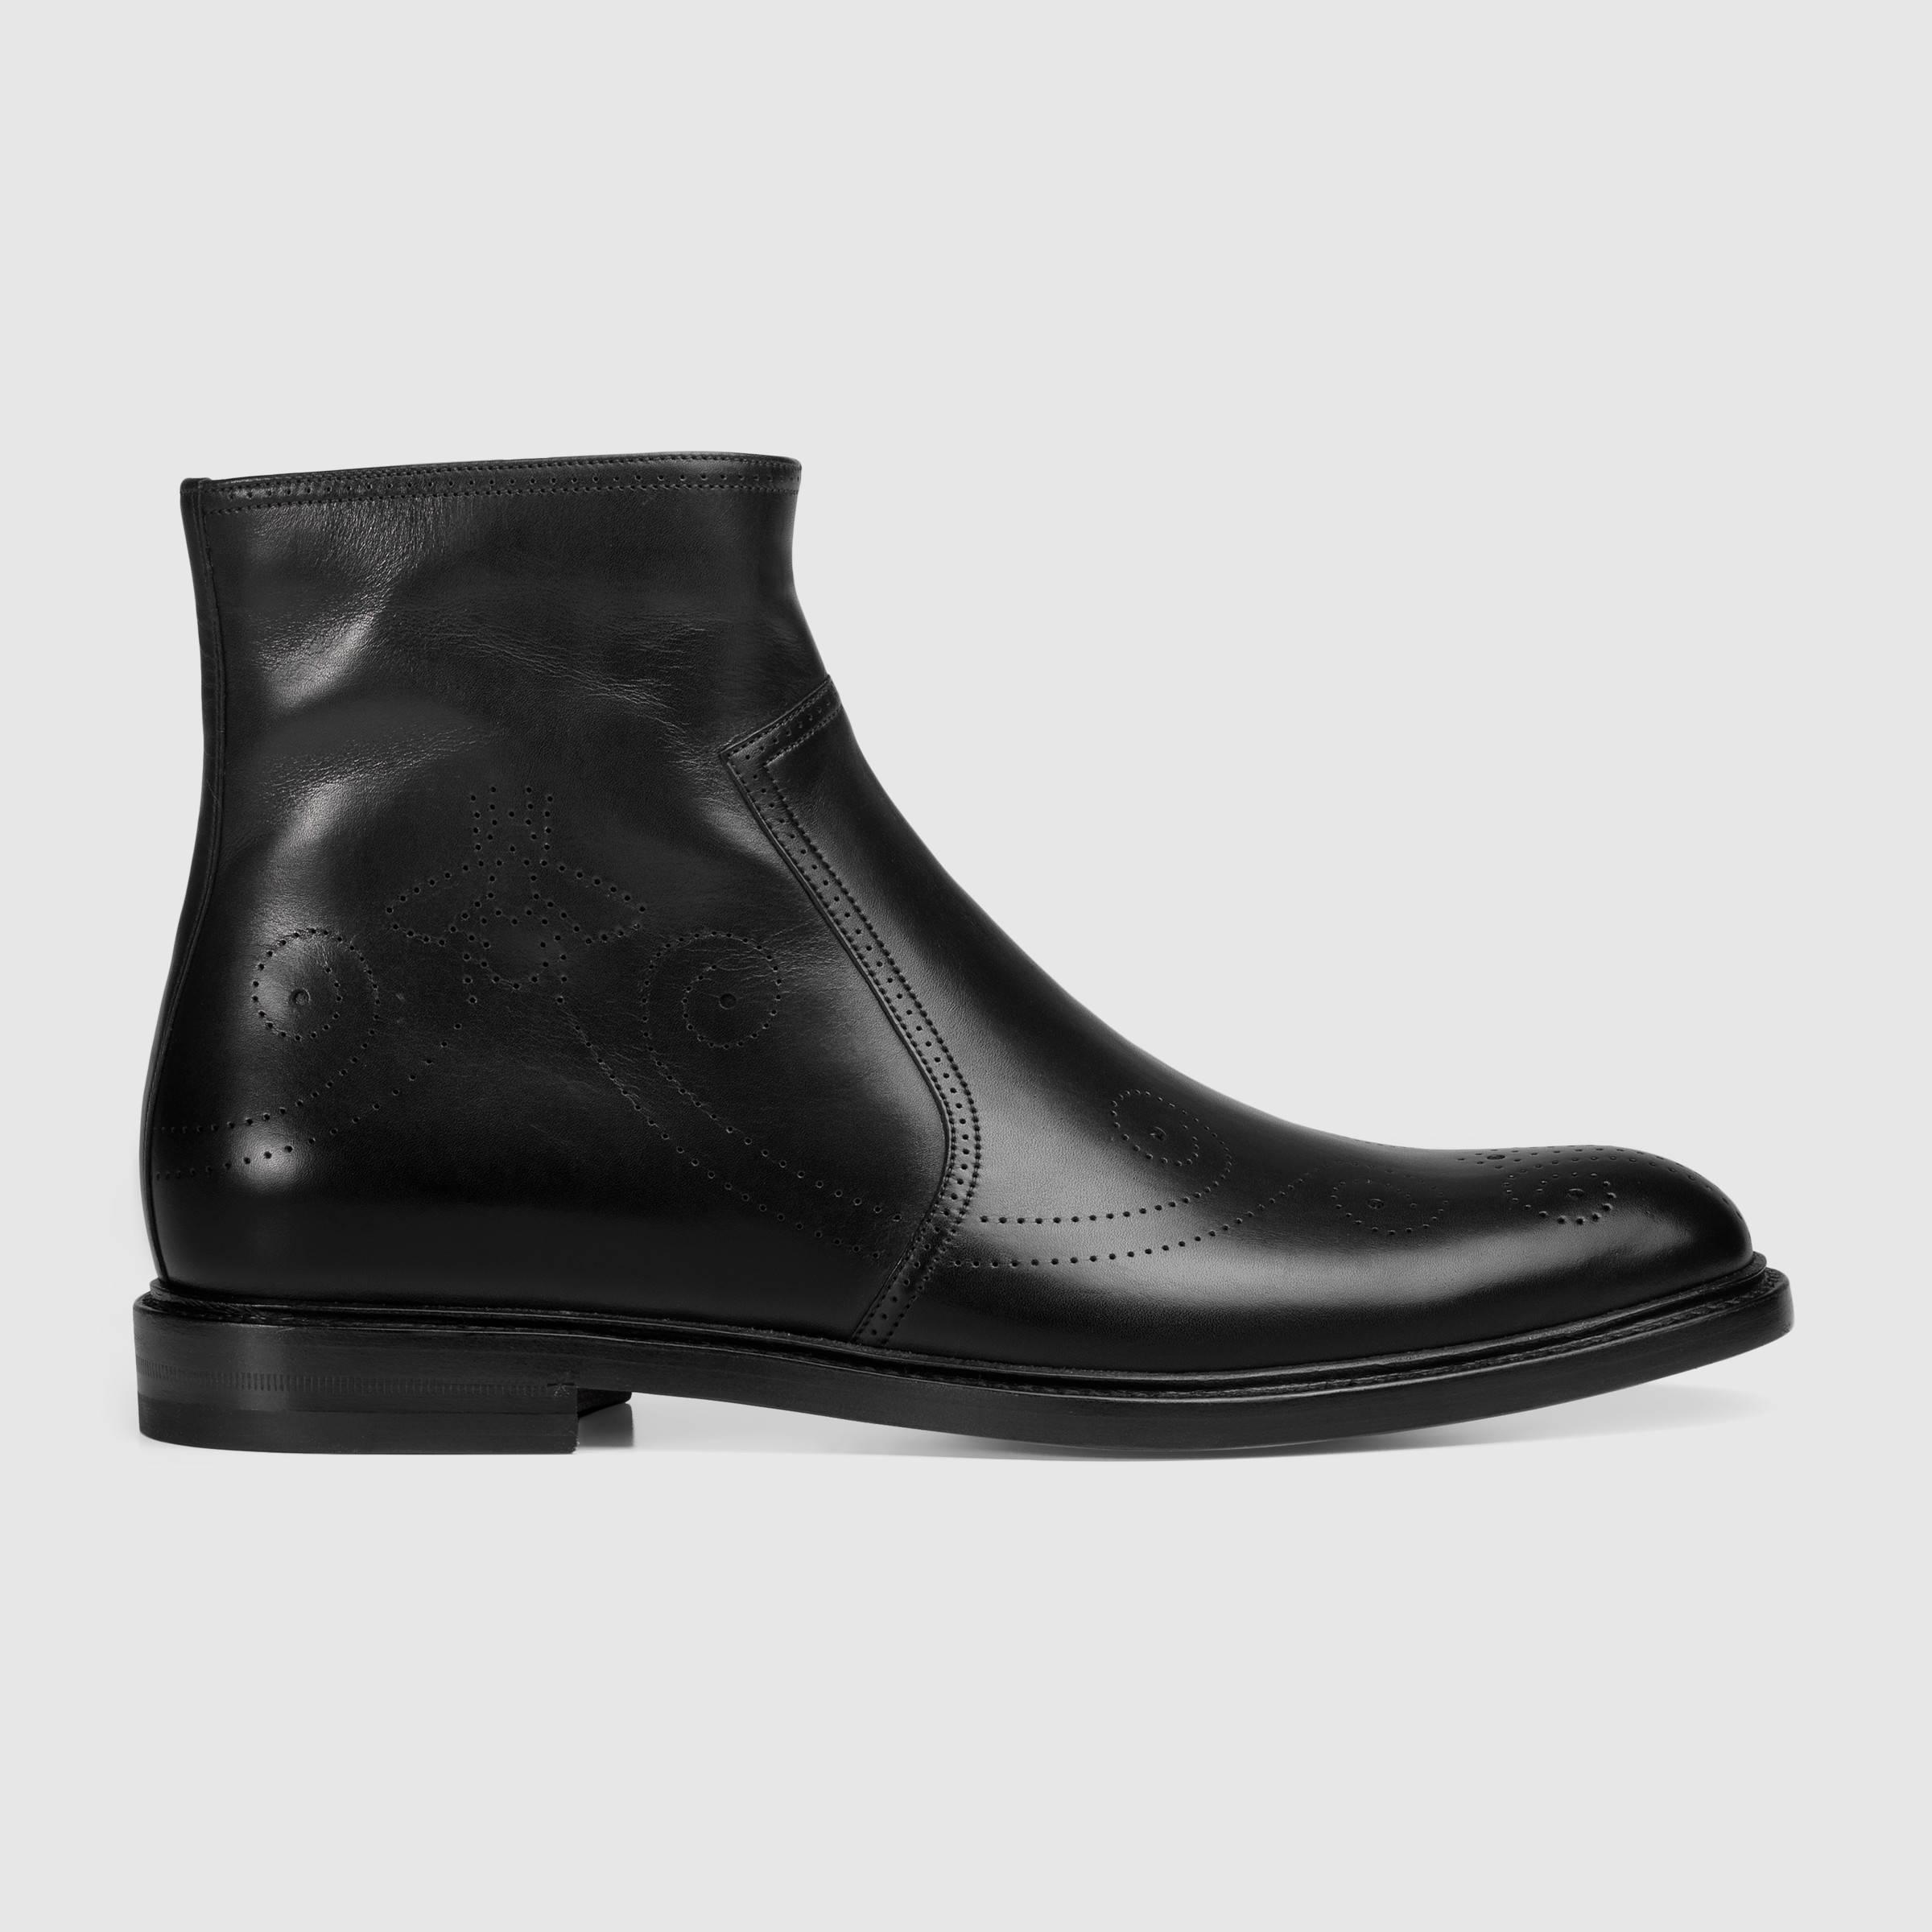 def834702a3 Lyst - Gucci Leather Bee Brogue Boot in Black for Men